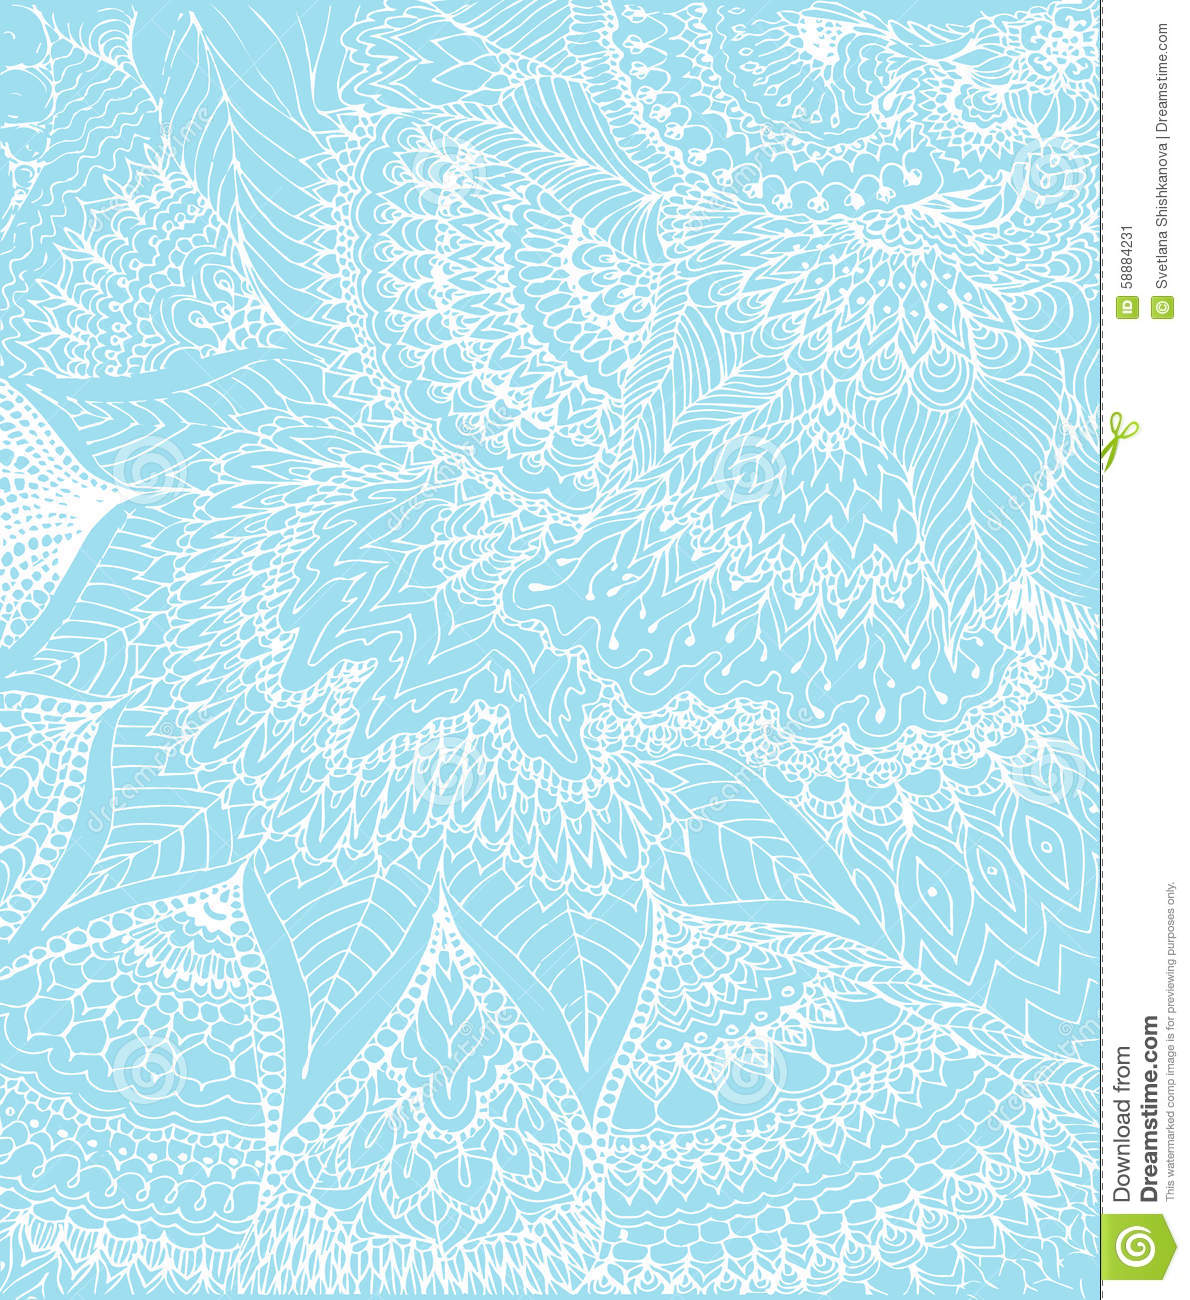 Vector Illustration Of Doodle Drawing On The Light Blue Background